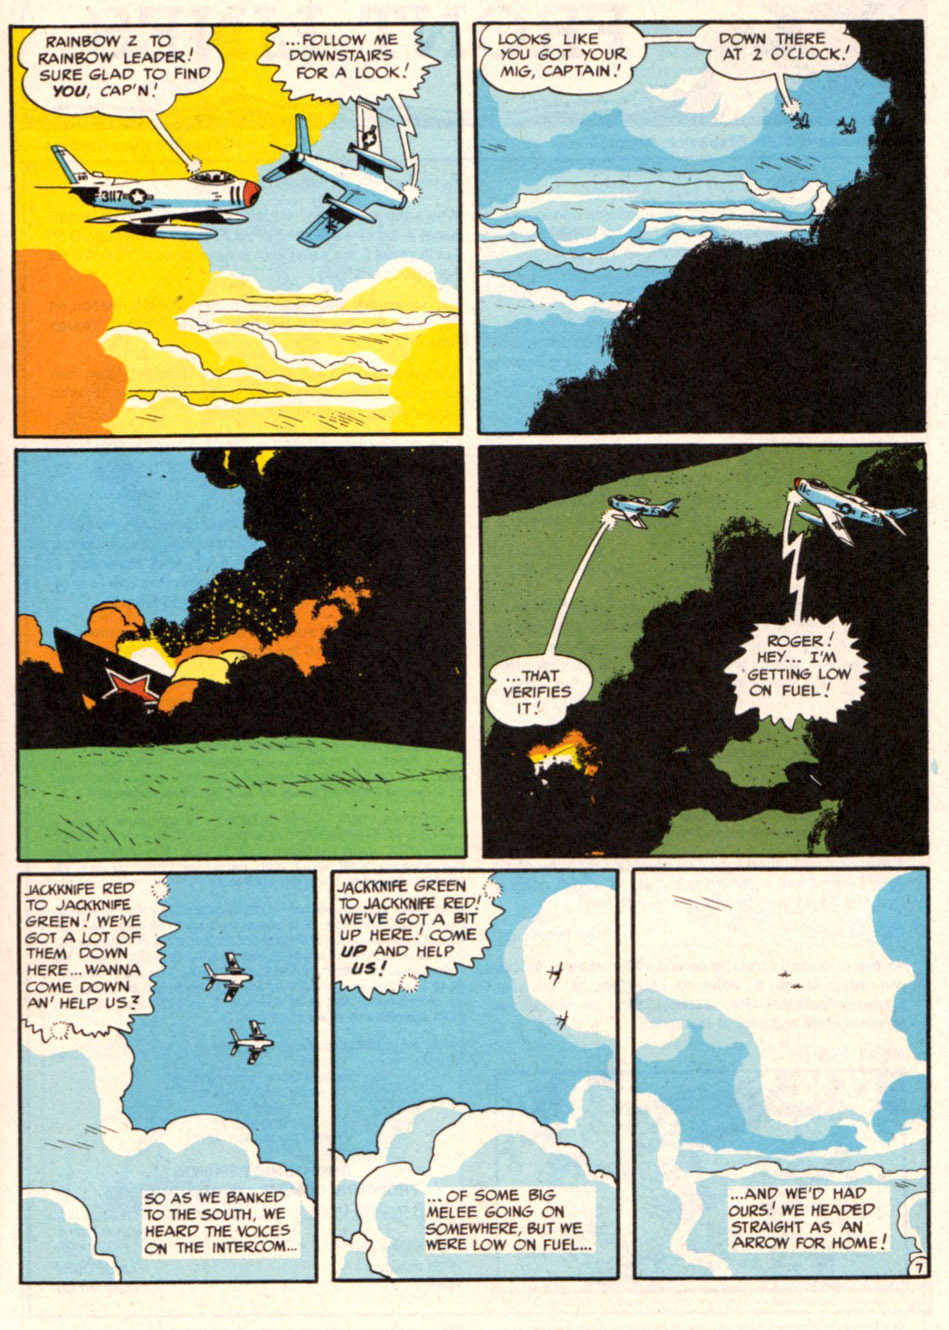 tothlove:  F86 Sabre Jet - Harvey Kurtzman and Alex Toth page 7 END